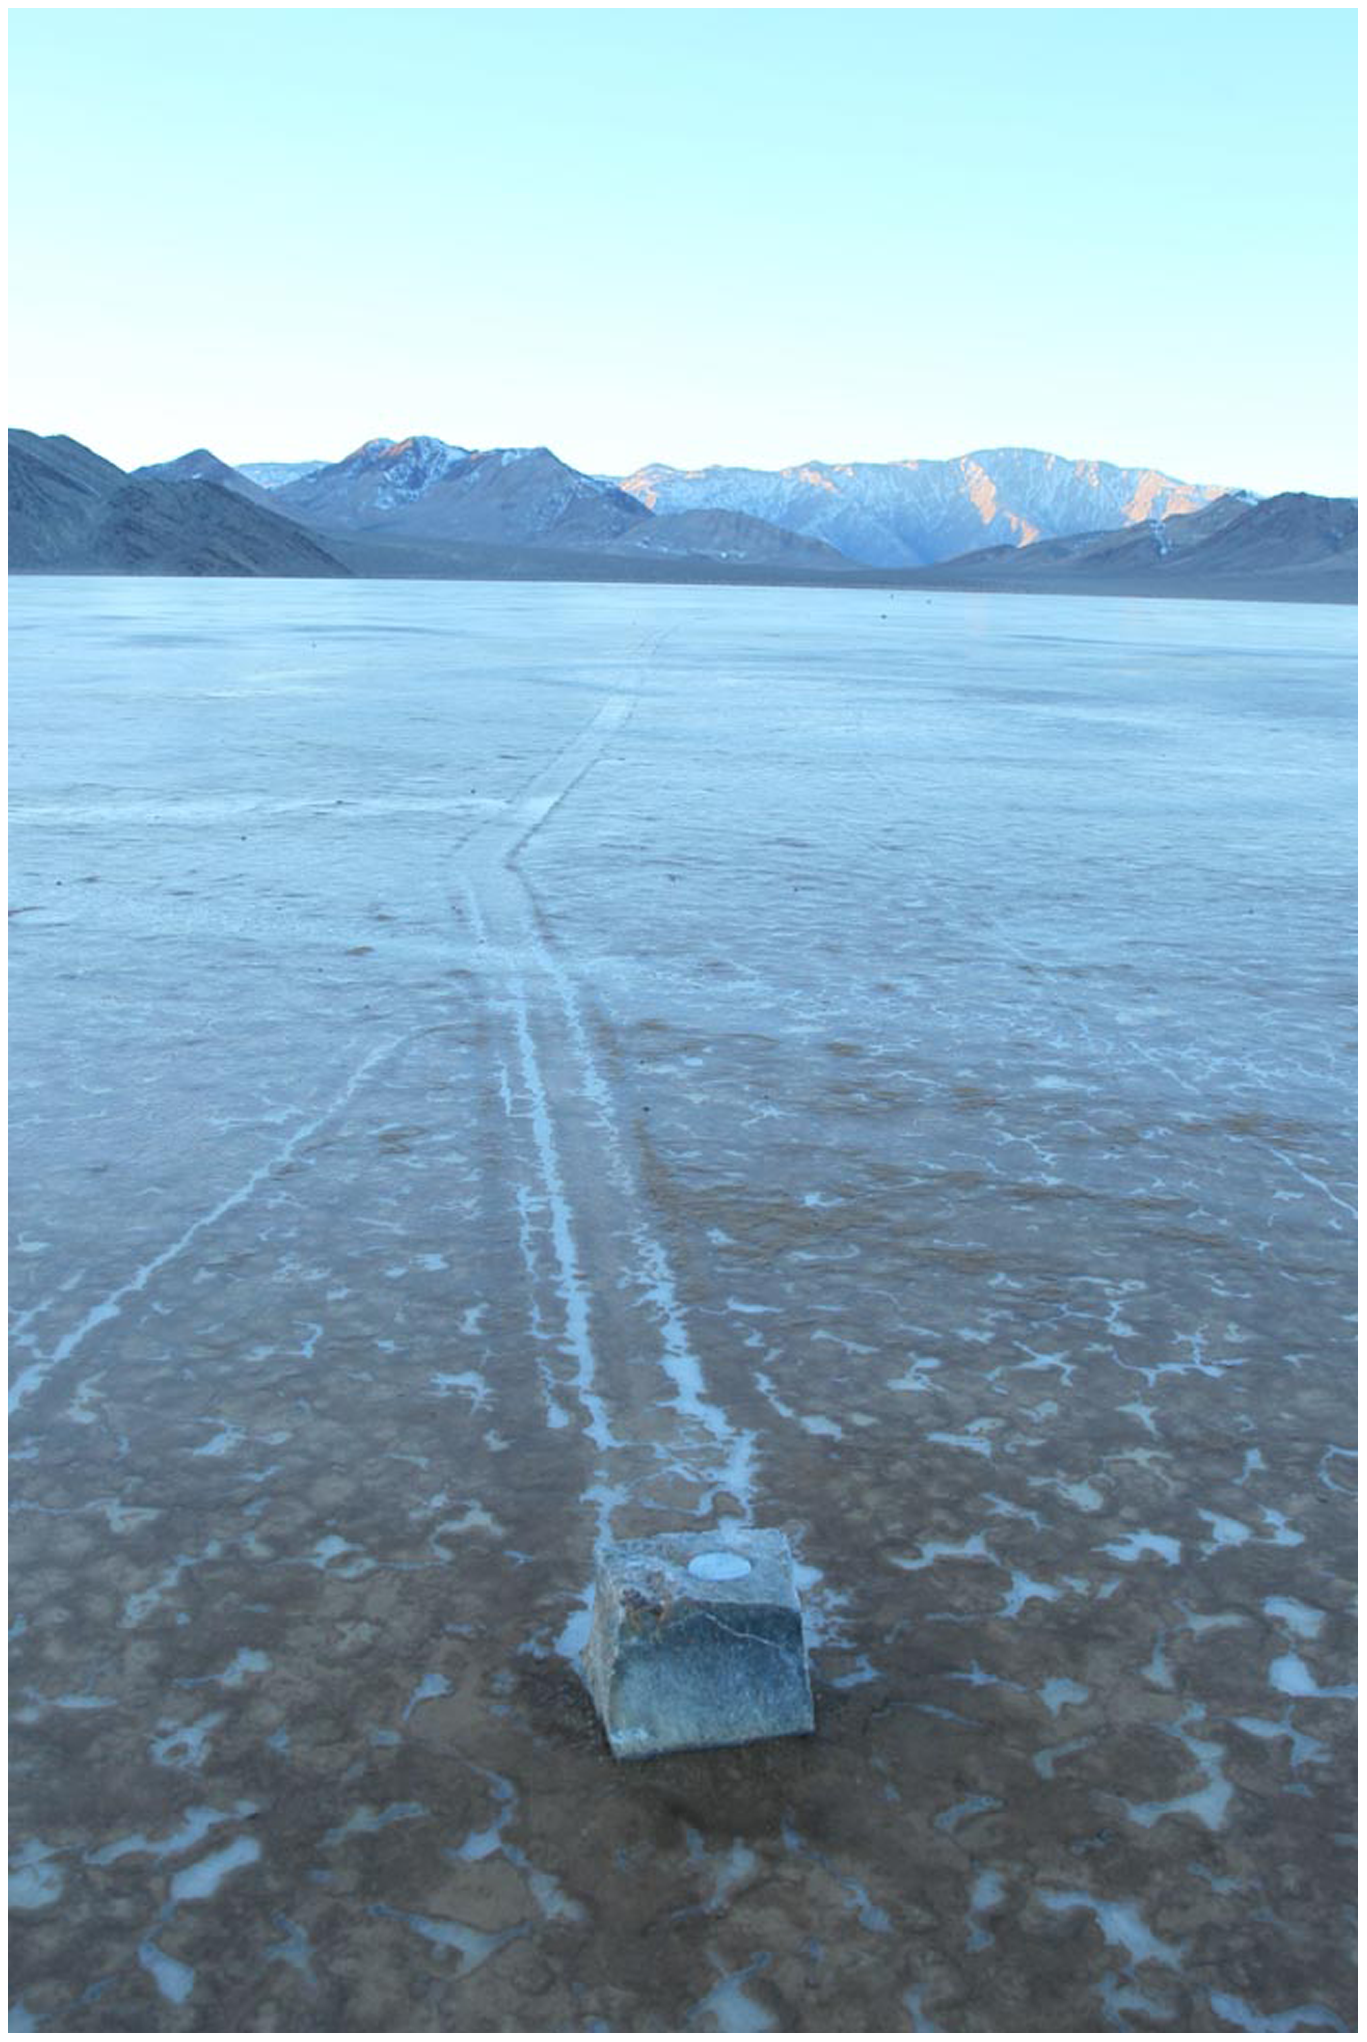 Rock trail of one GPS-equipped rock. Source: Figure 4, Sliding Rocks on Racetrack Playa, Death Valley National Park: First Observation of Rocks in Motion. Image by Mike Hartmann. doi:10.1371/journal.pone.0105948.g001